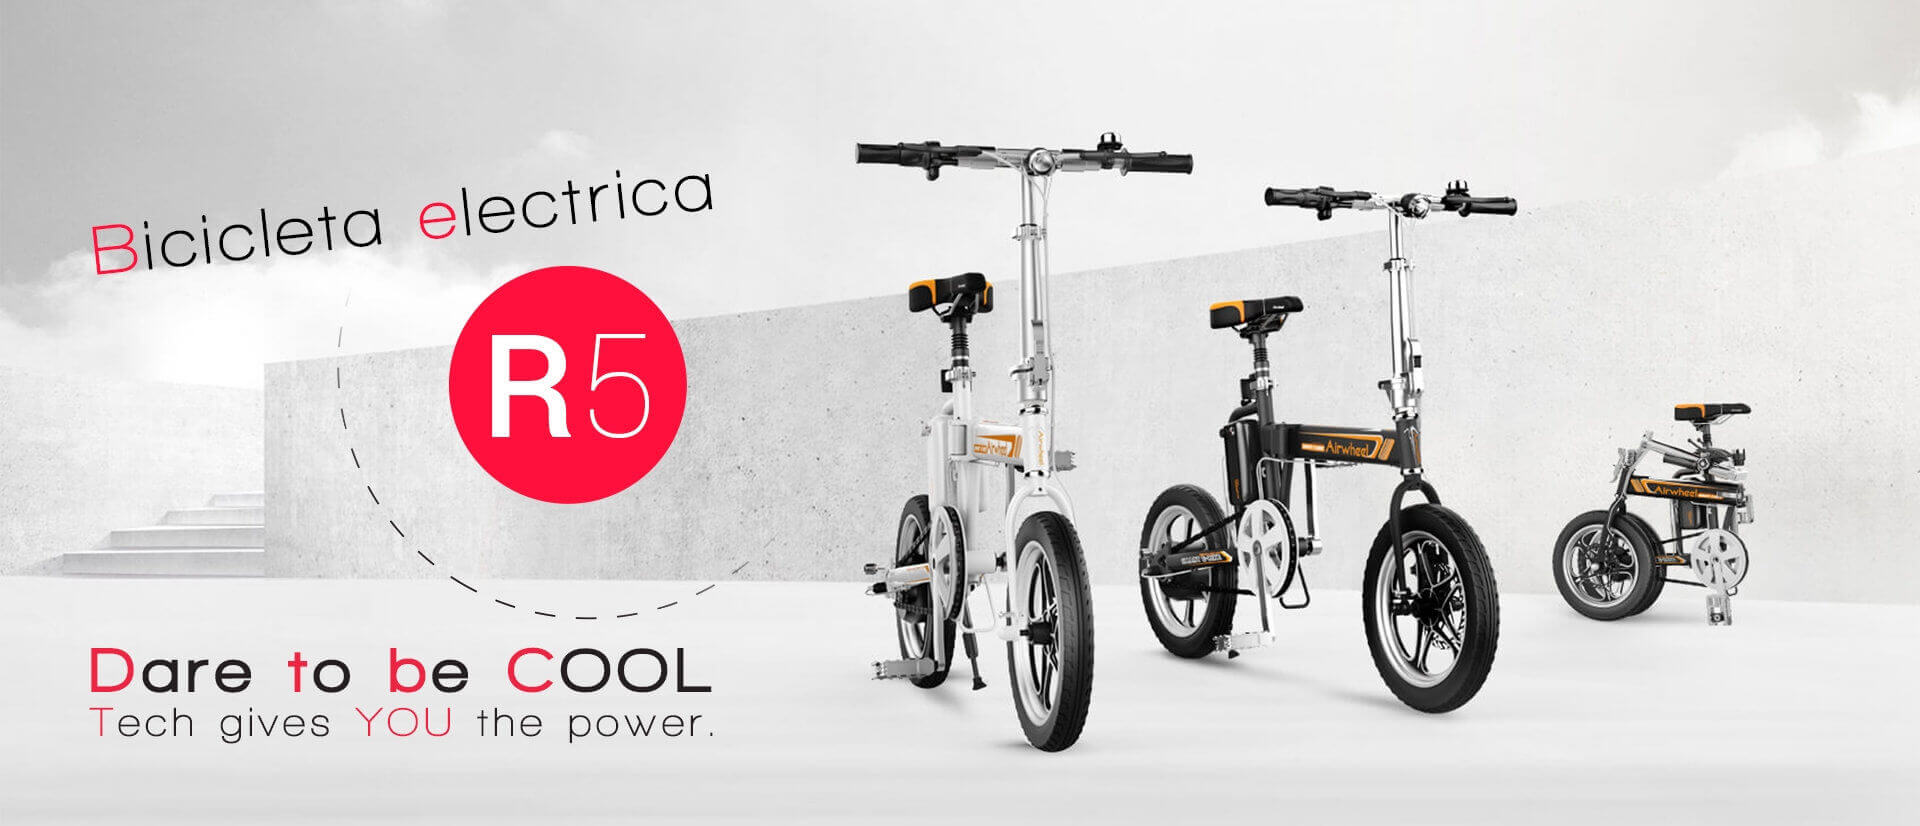 AirMotion Banner Banner_AirMotion_Bicicleta_electrica_1920x826_px.jpg